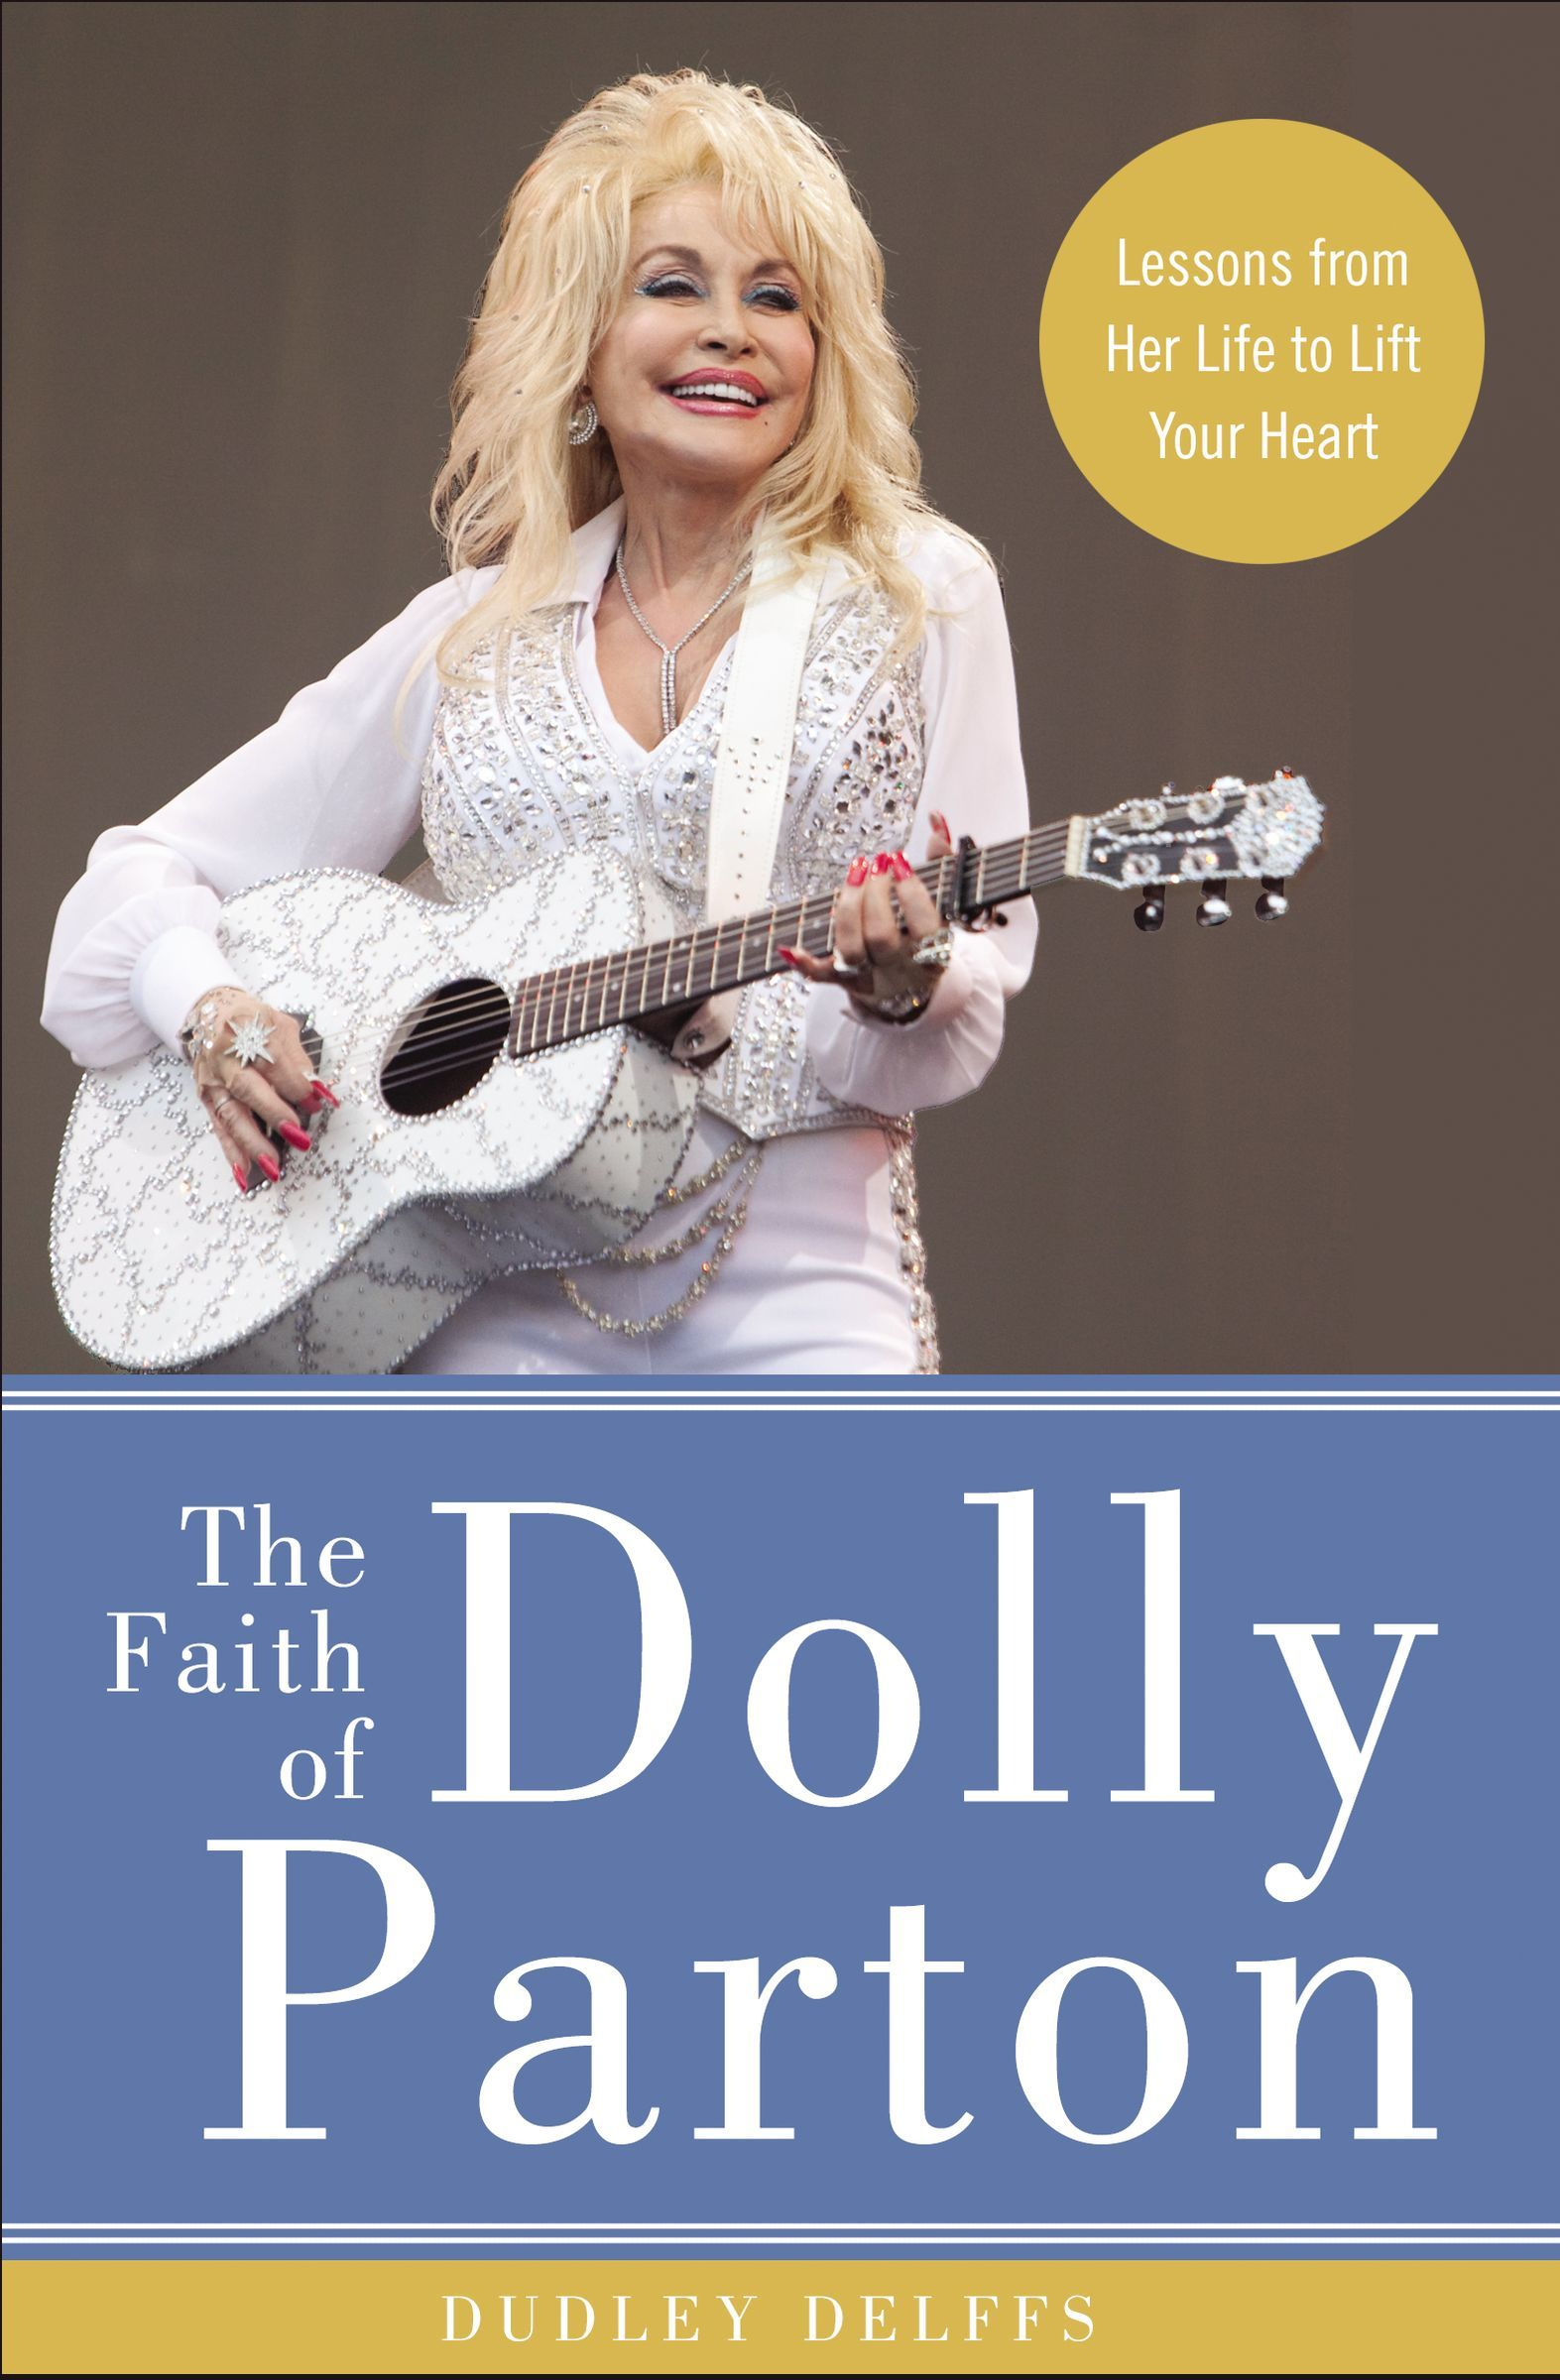 The Faith of Dolly Parton Lessons from Her Life to Lift Your Heart